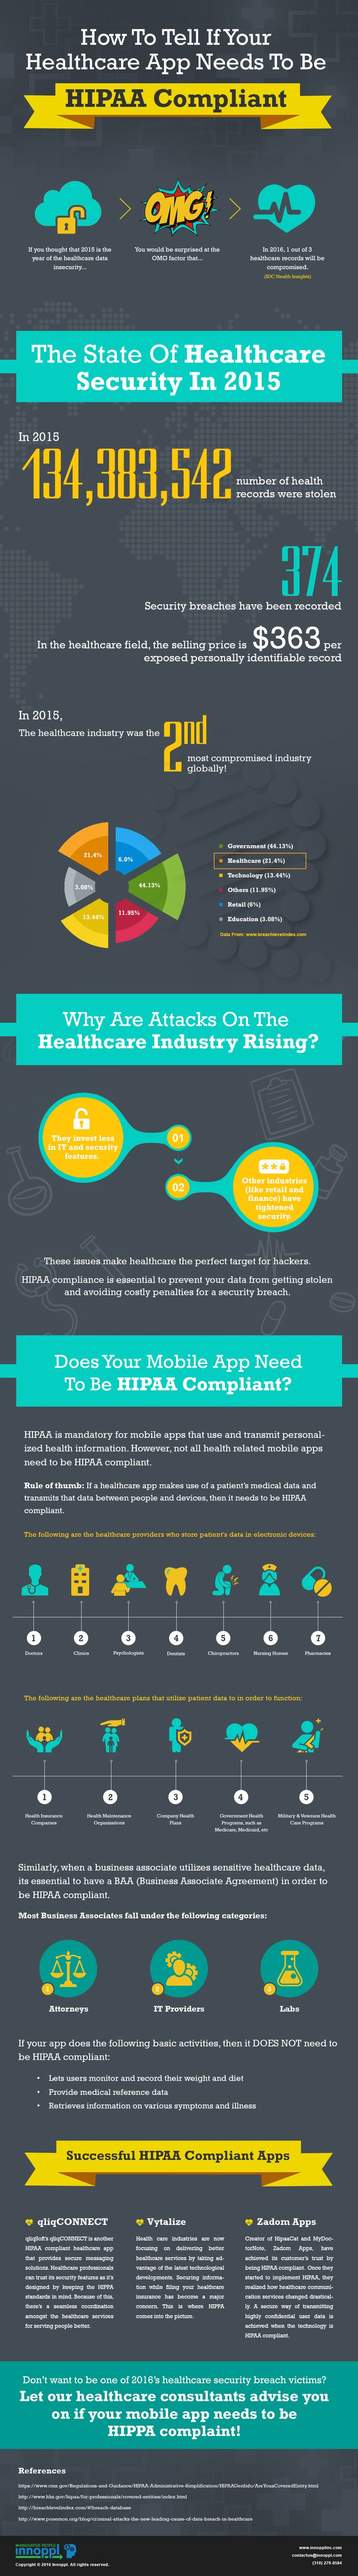 What is HIPAA compliance? Do you need compliance for your mobile app? This infographic by Innoppl tackles these and other healthcare technology related topics.